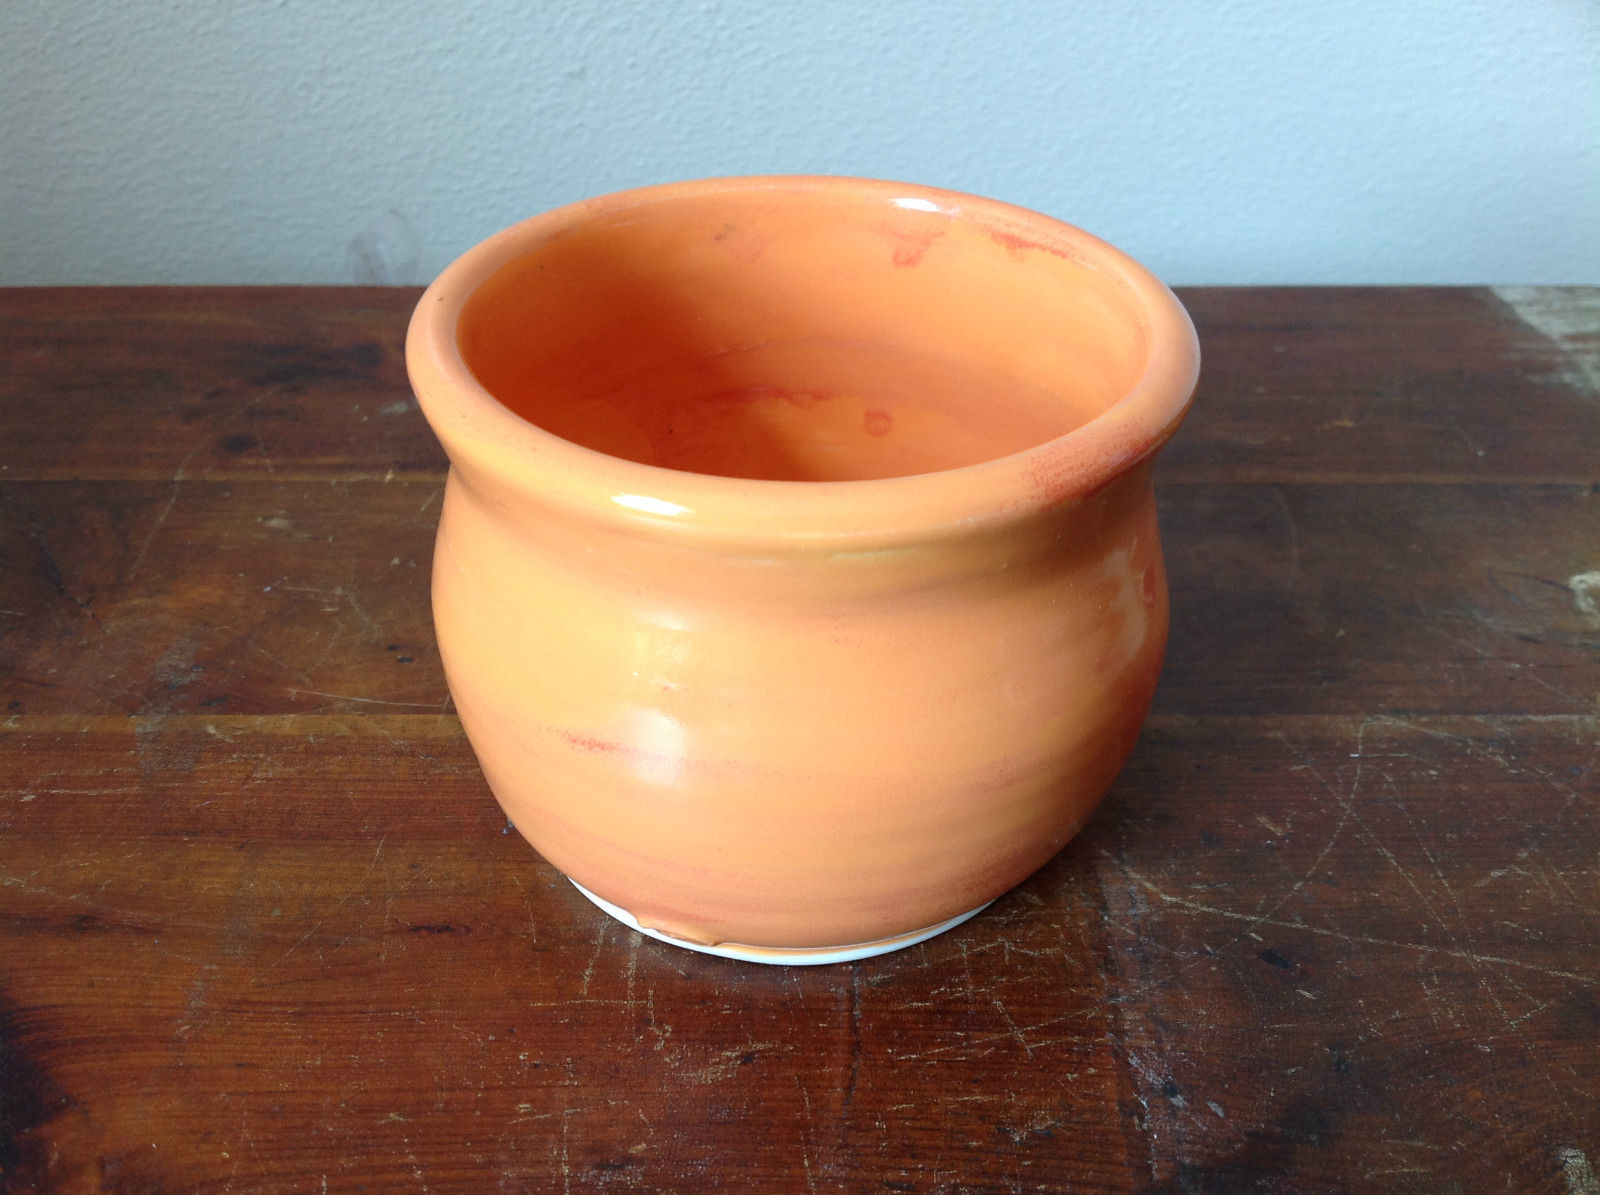 Orange Hand Crafted Artisan Ceramic Vase Jar Bowl Crock 2007